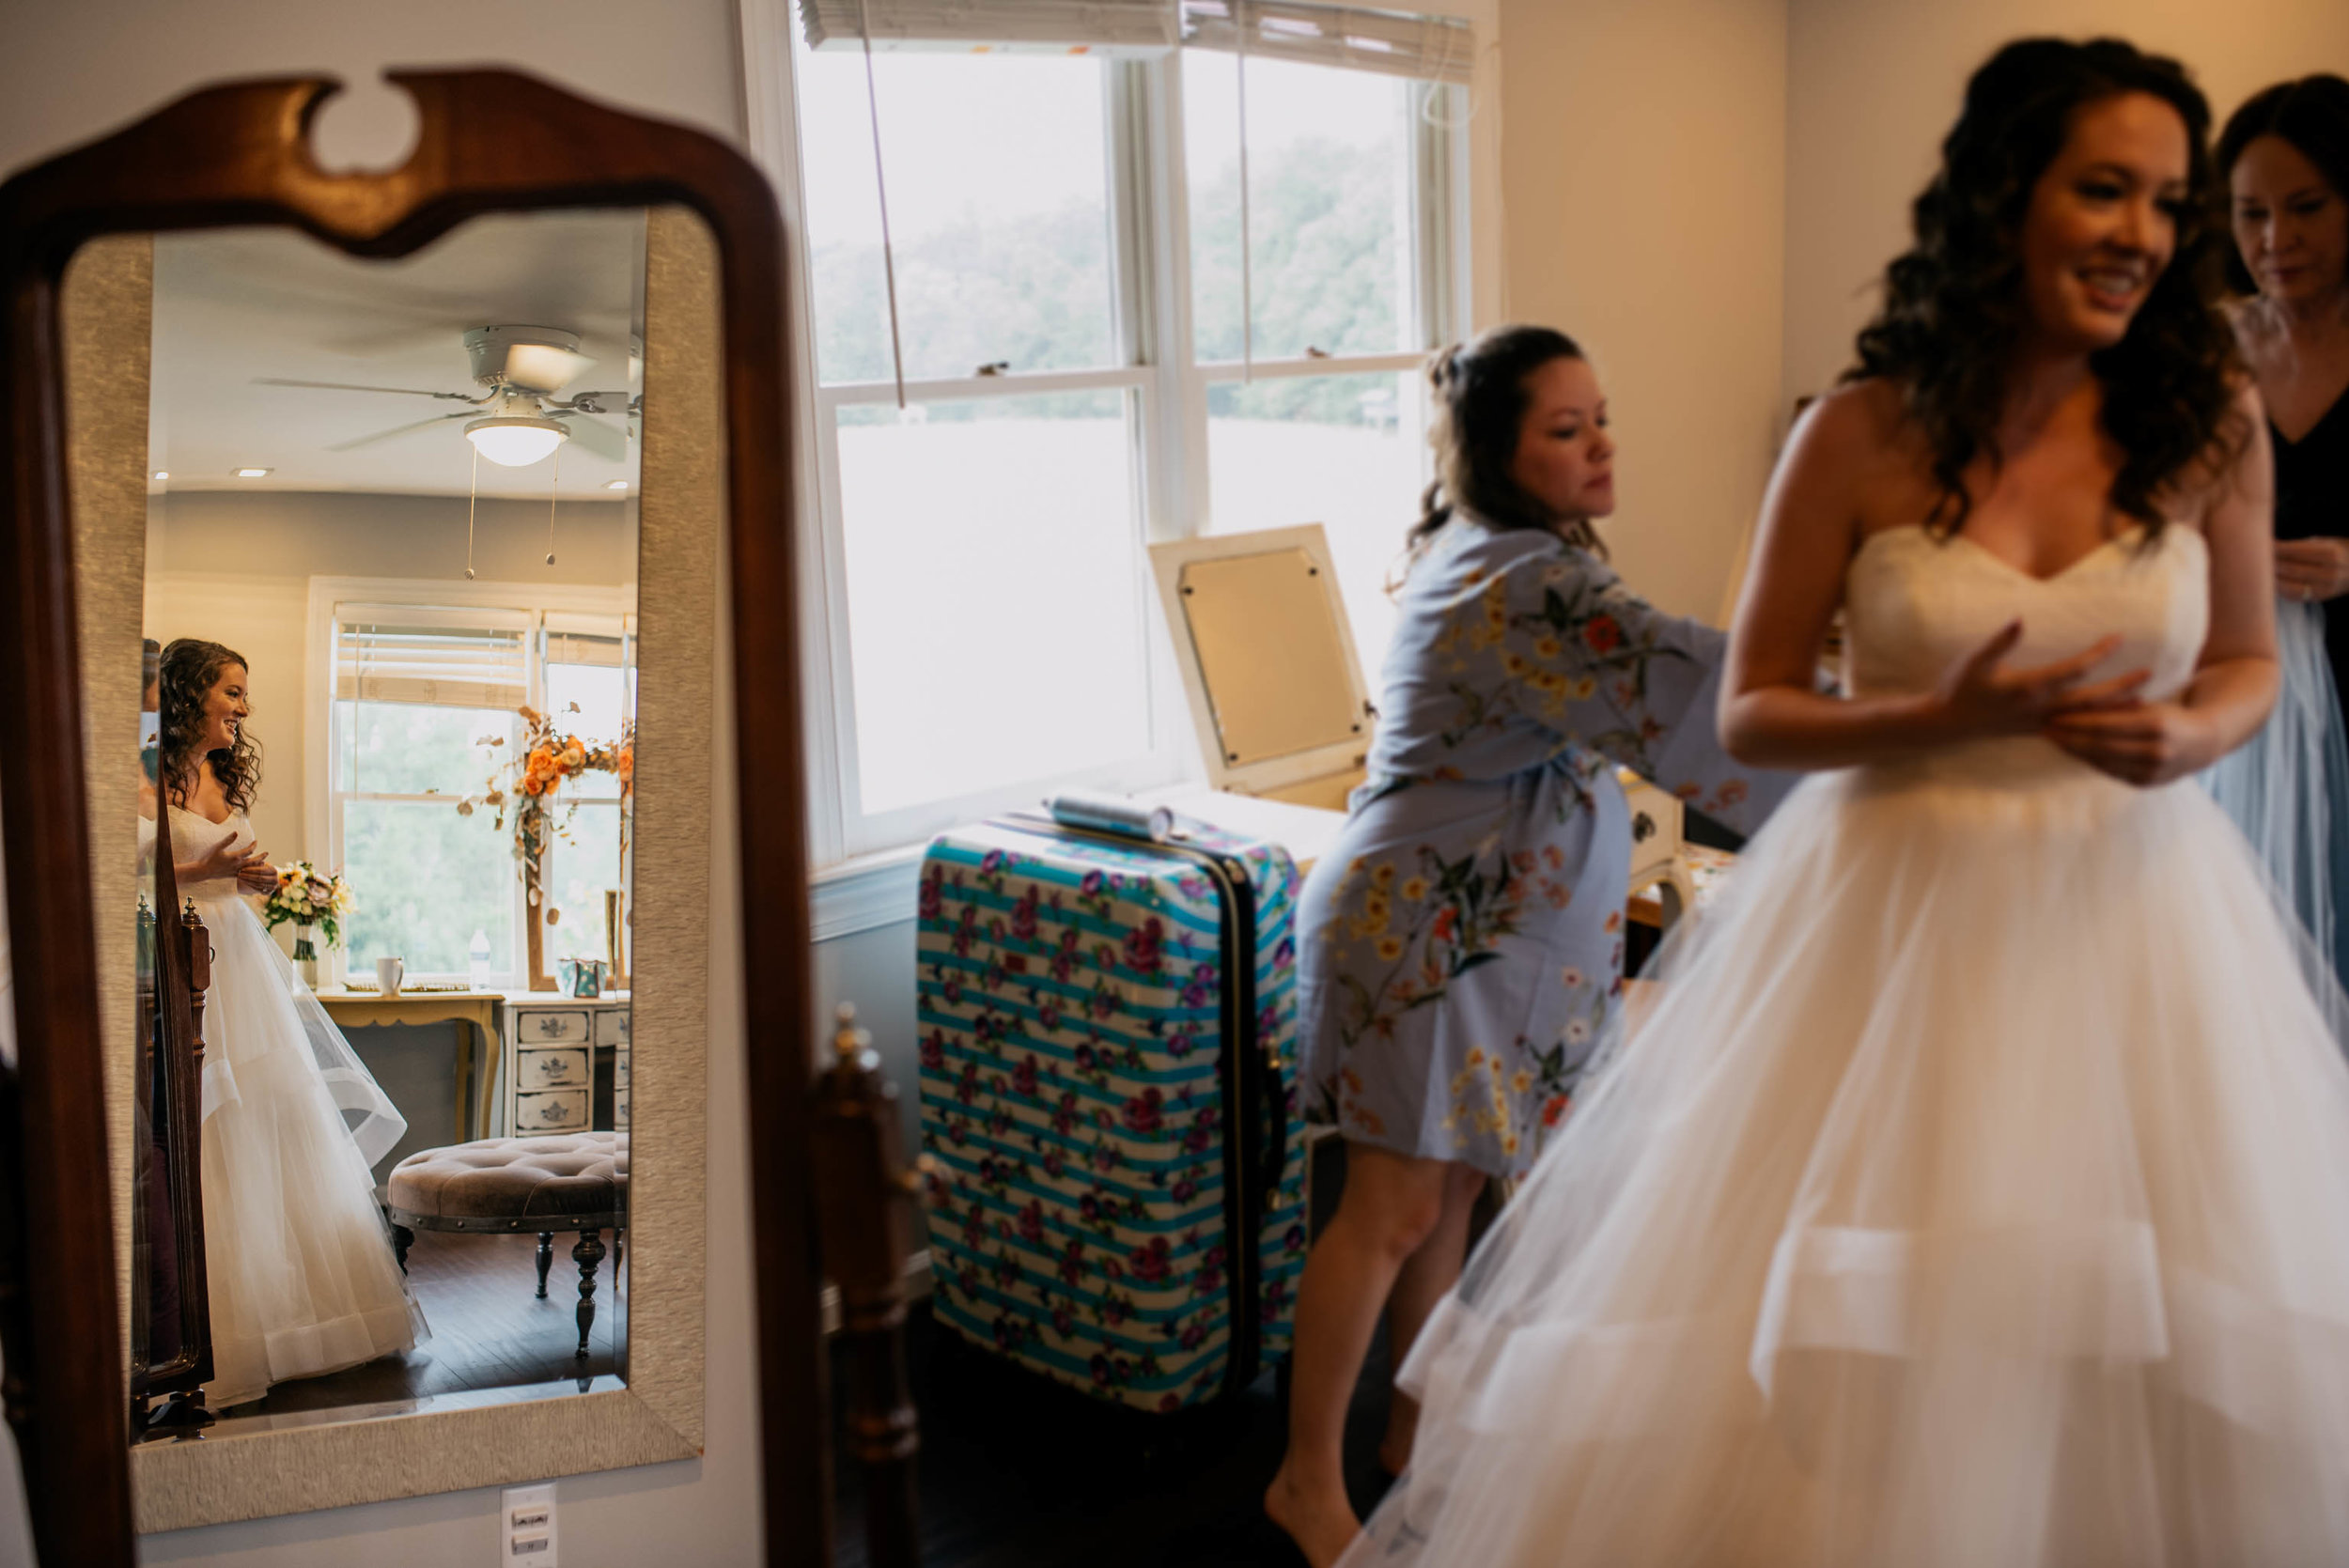 reflection of bride as she finished getting on her dress while her bridesmaids look on